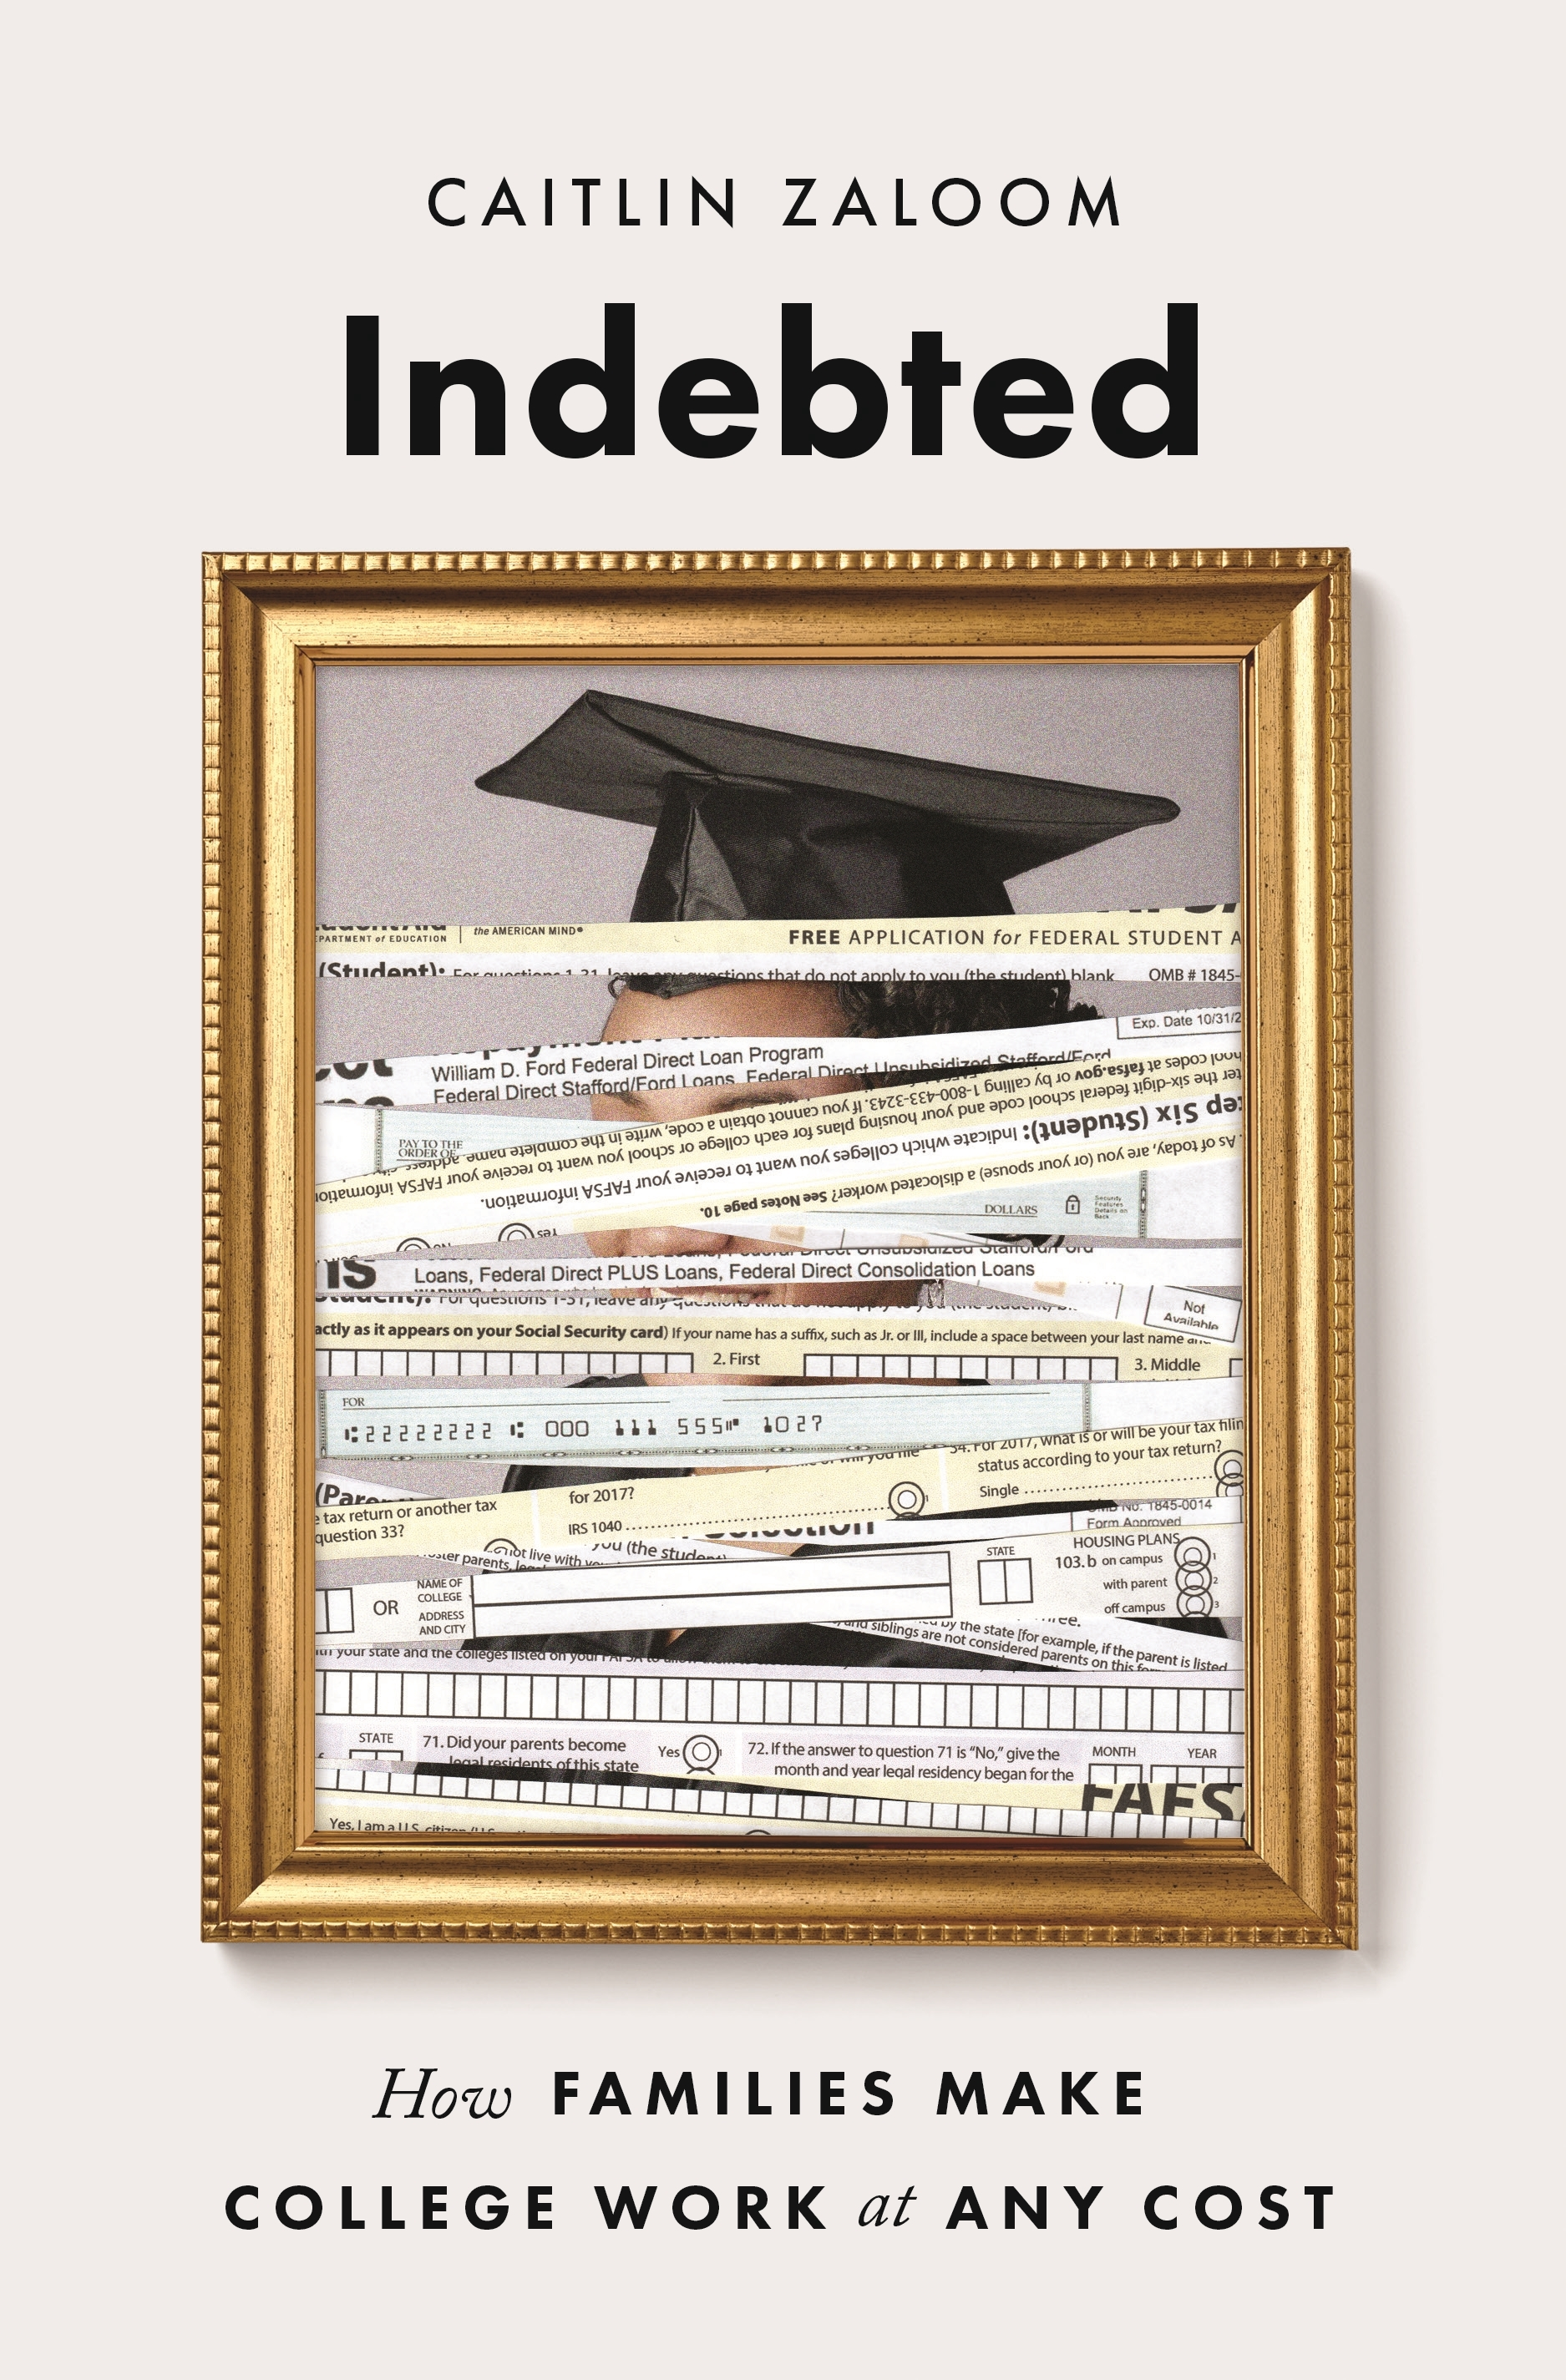 Book Launch: Indebted by Caitlin Zaloom in conversation with Liza Featherstone